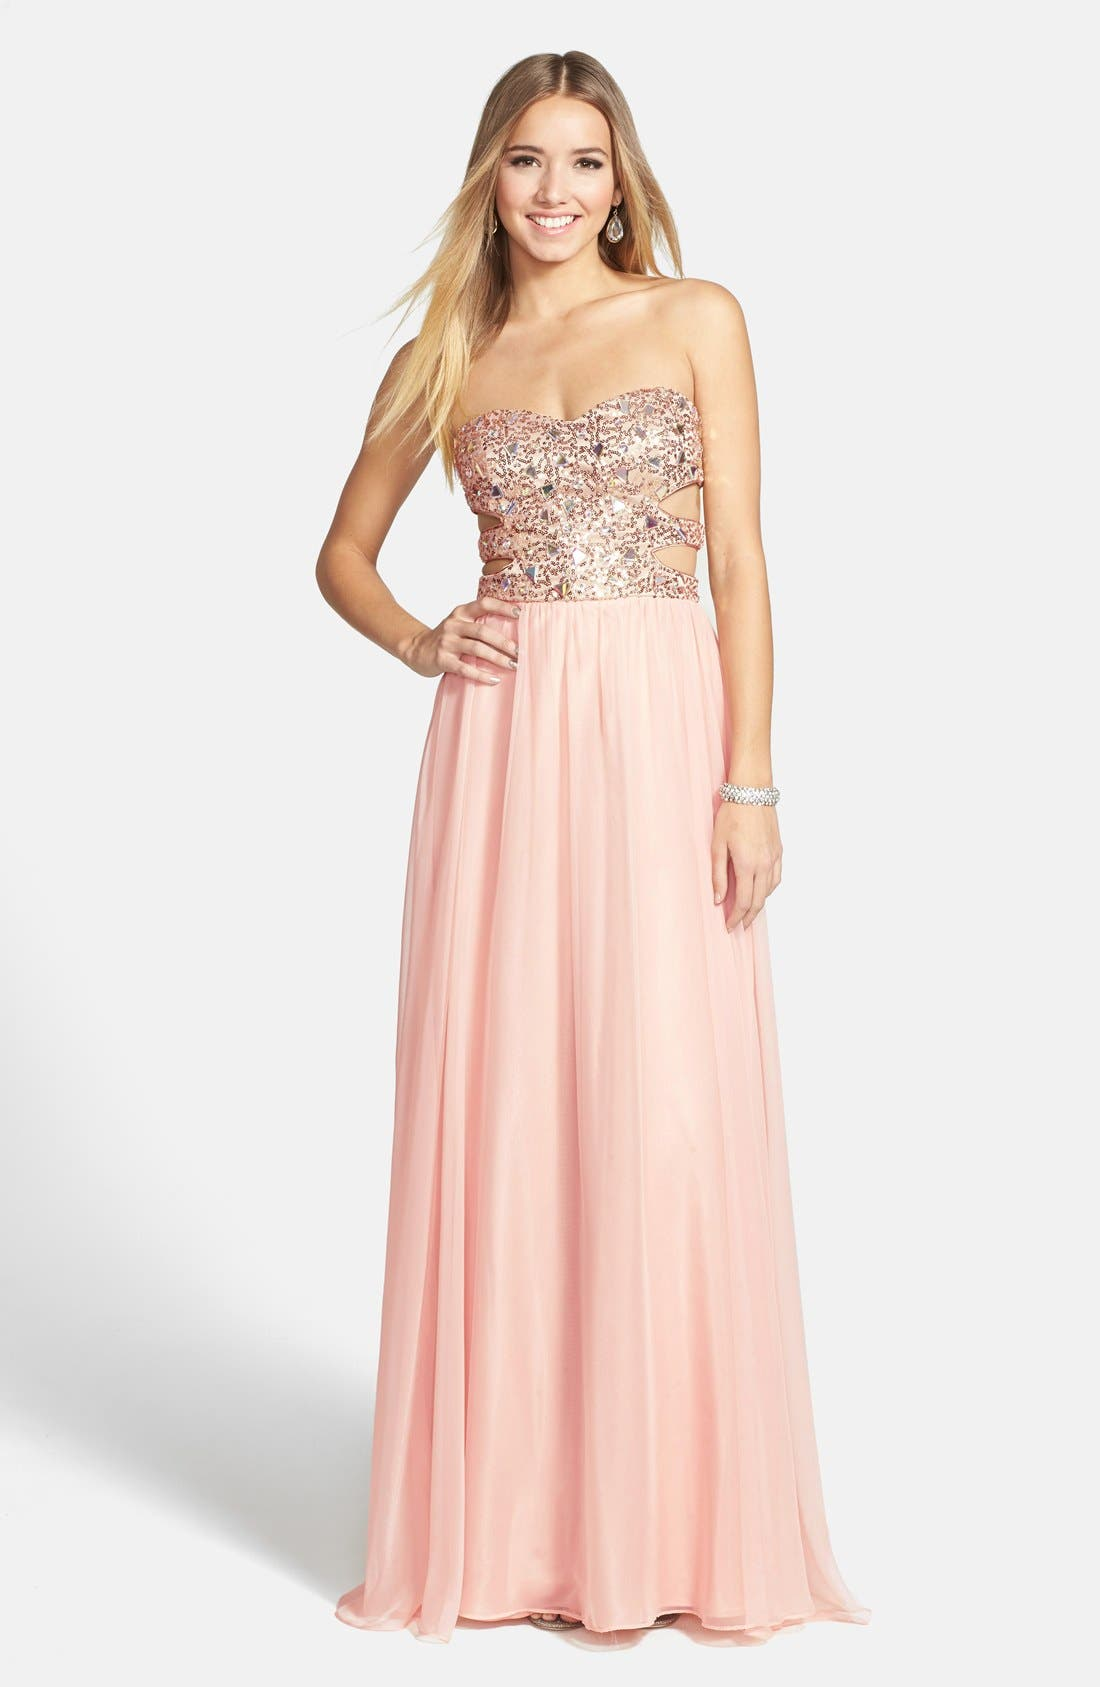 Main Image - Morgan & Co. Embellished Cutout Sweetheart Bodice Strapless Gown (Juniors)